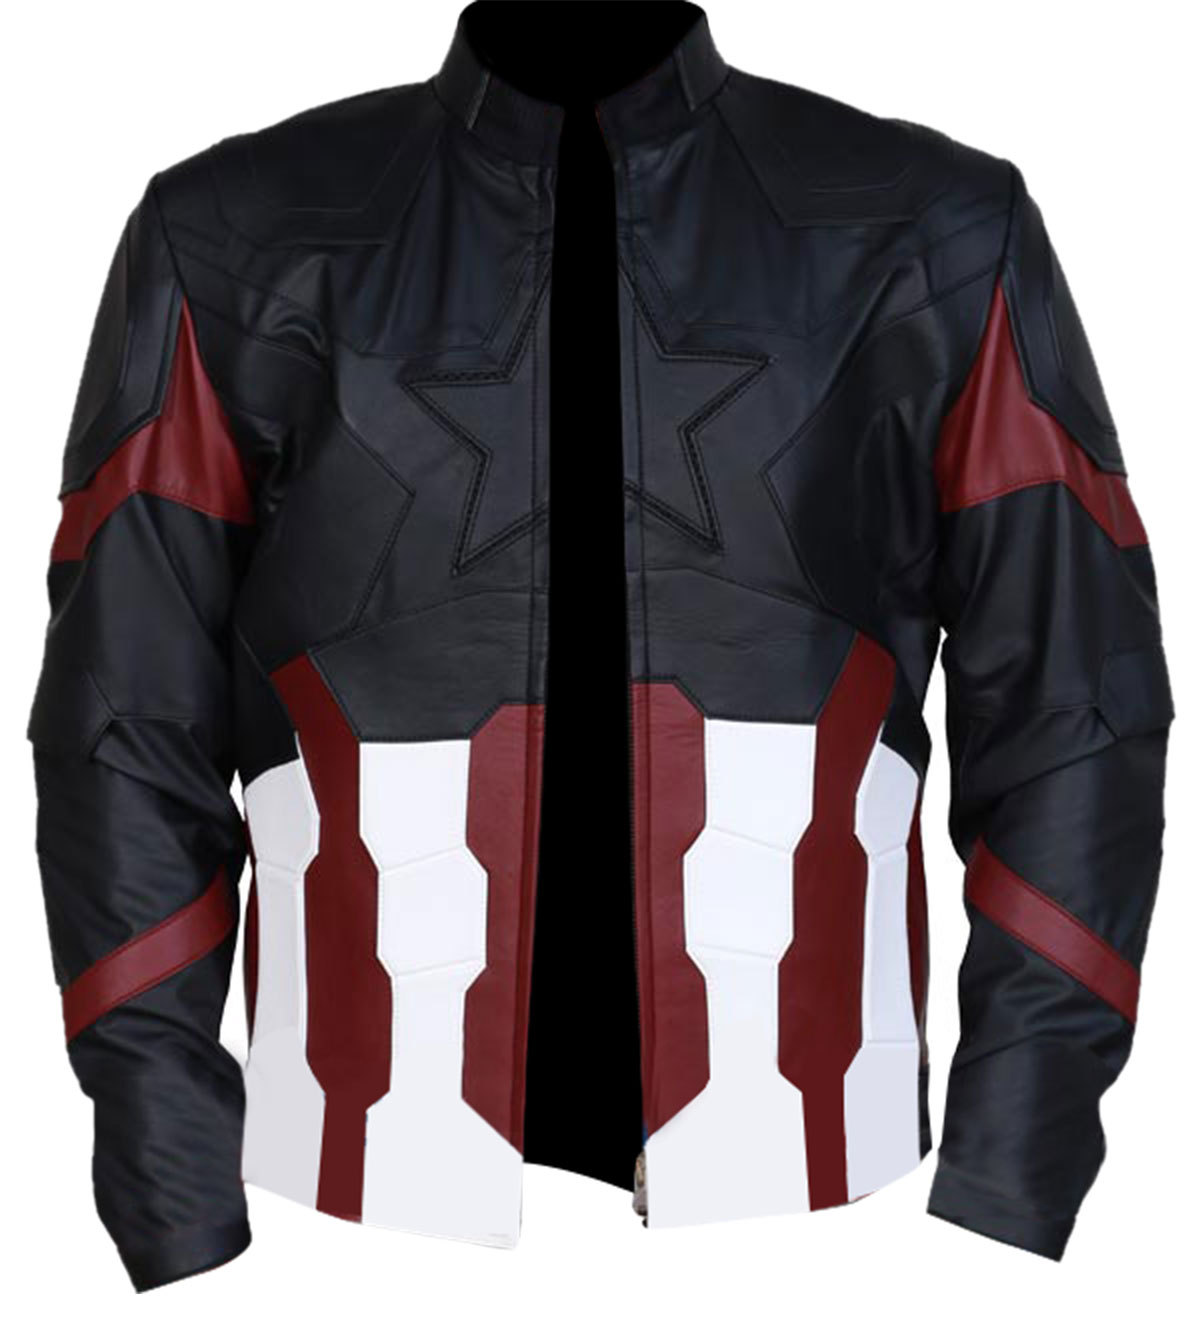 Steve rogers infinity war costume leather jacket